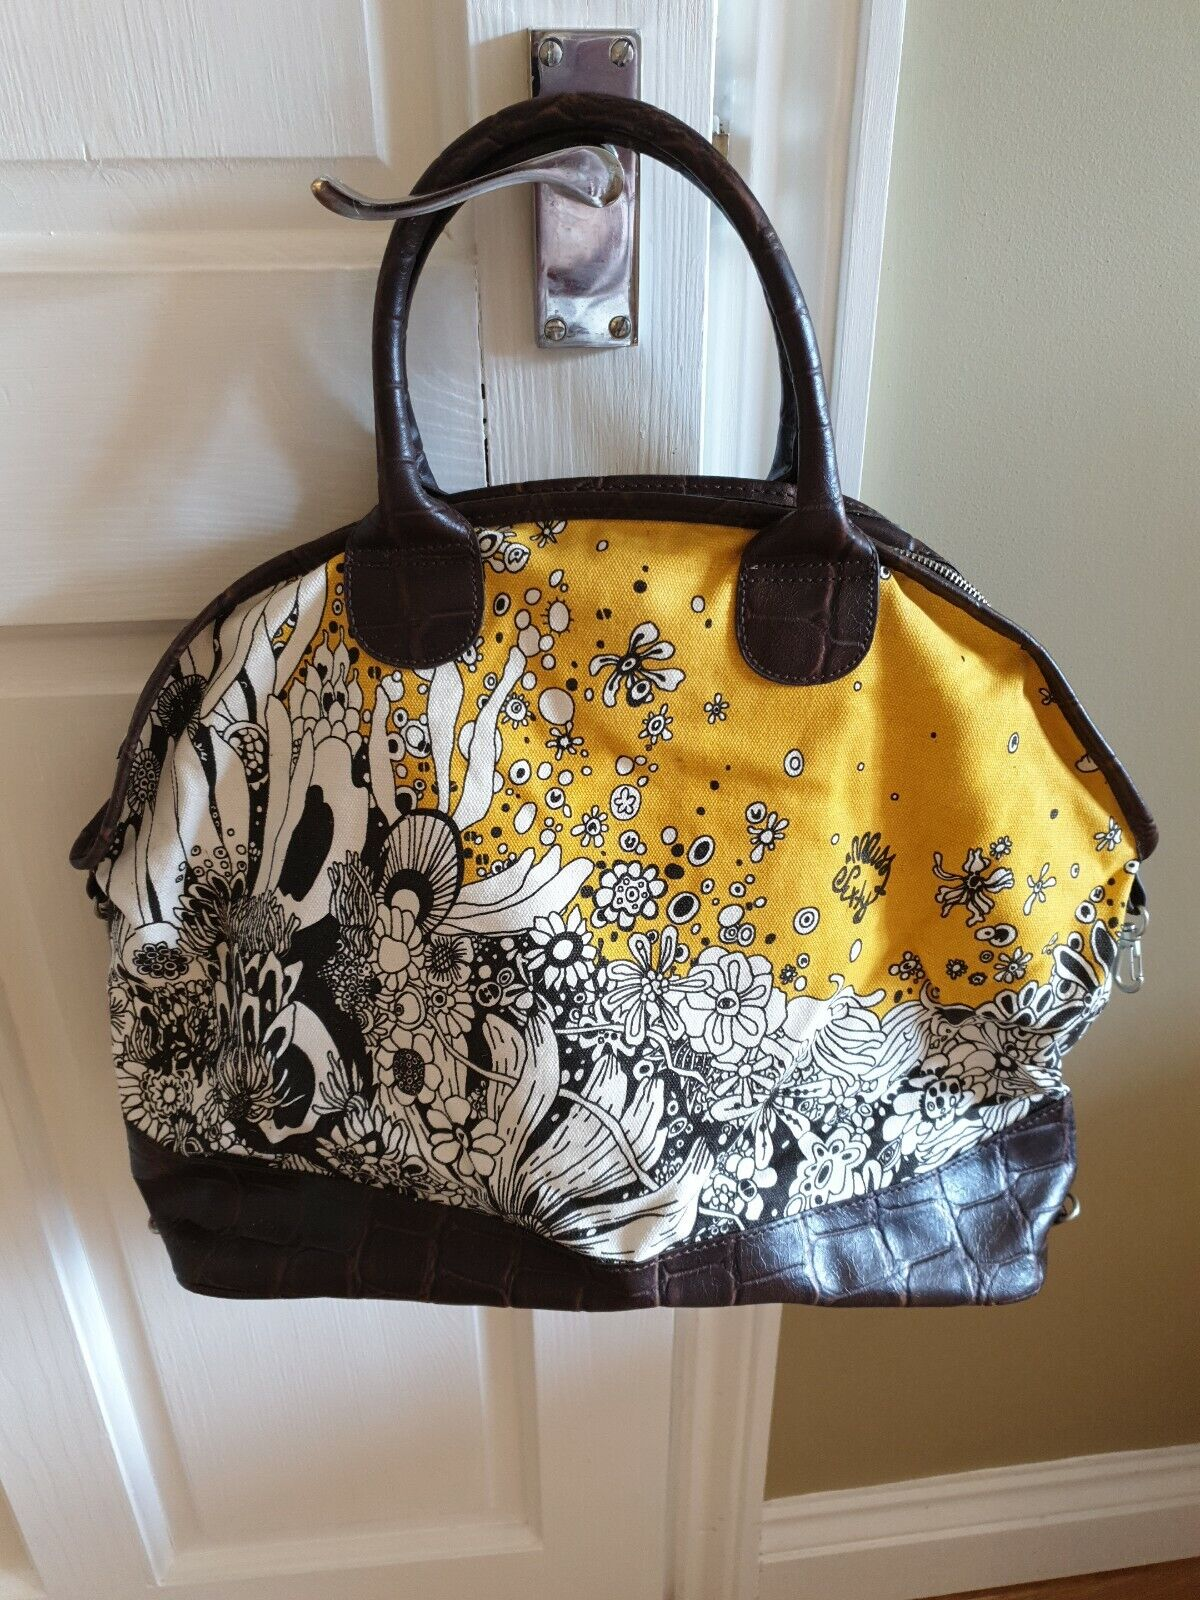 MISS SIXTY Handbag Brown Leather and Black/White/Yellow Cotton Tote 2 Handles